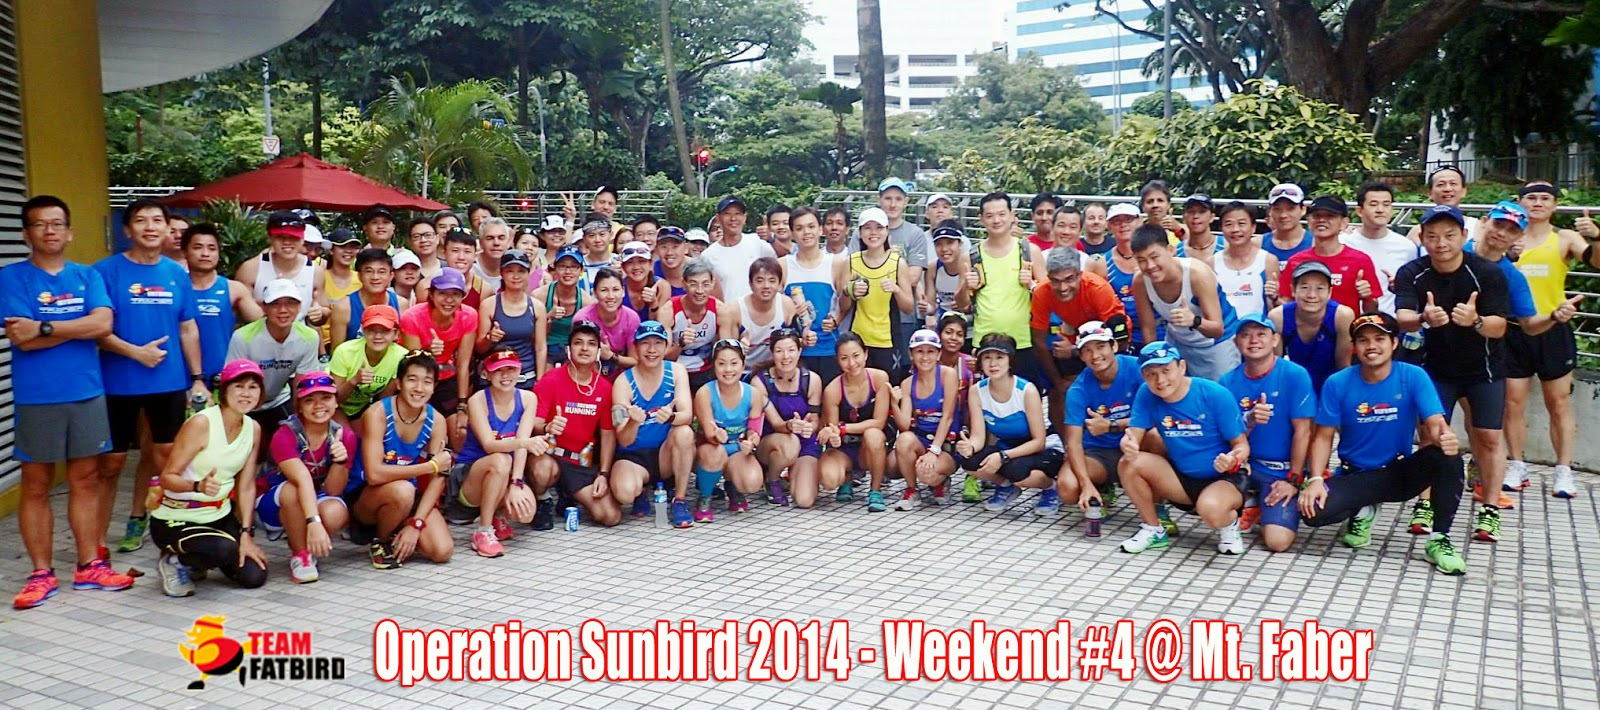 OSB Weekend #4: Sunbirds revisit the Western Hills